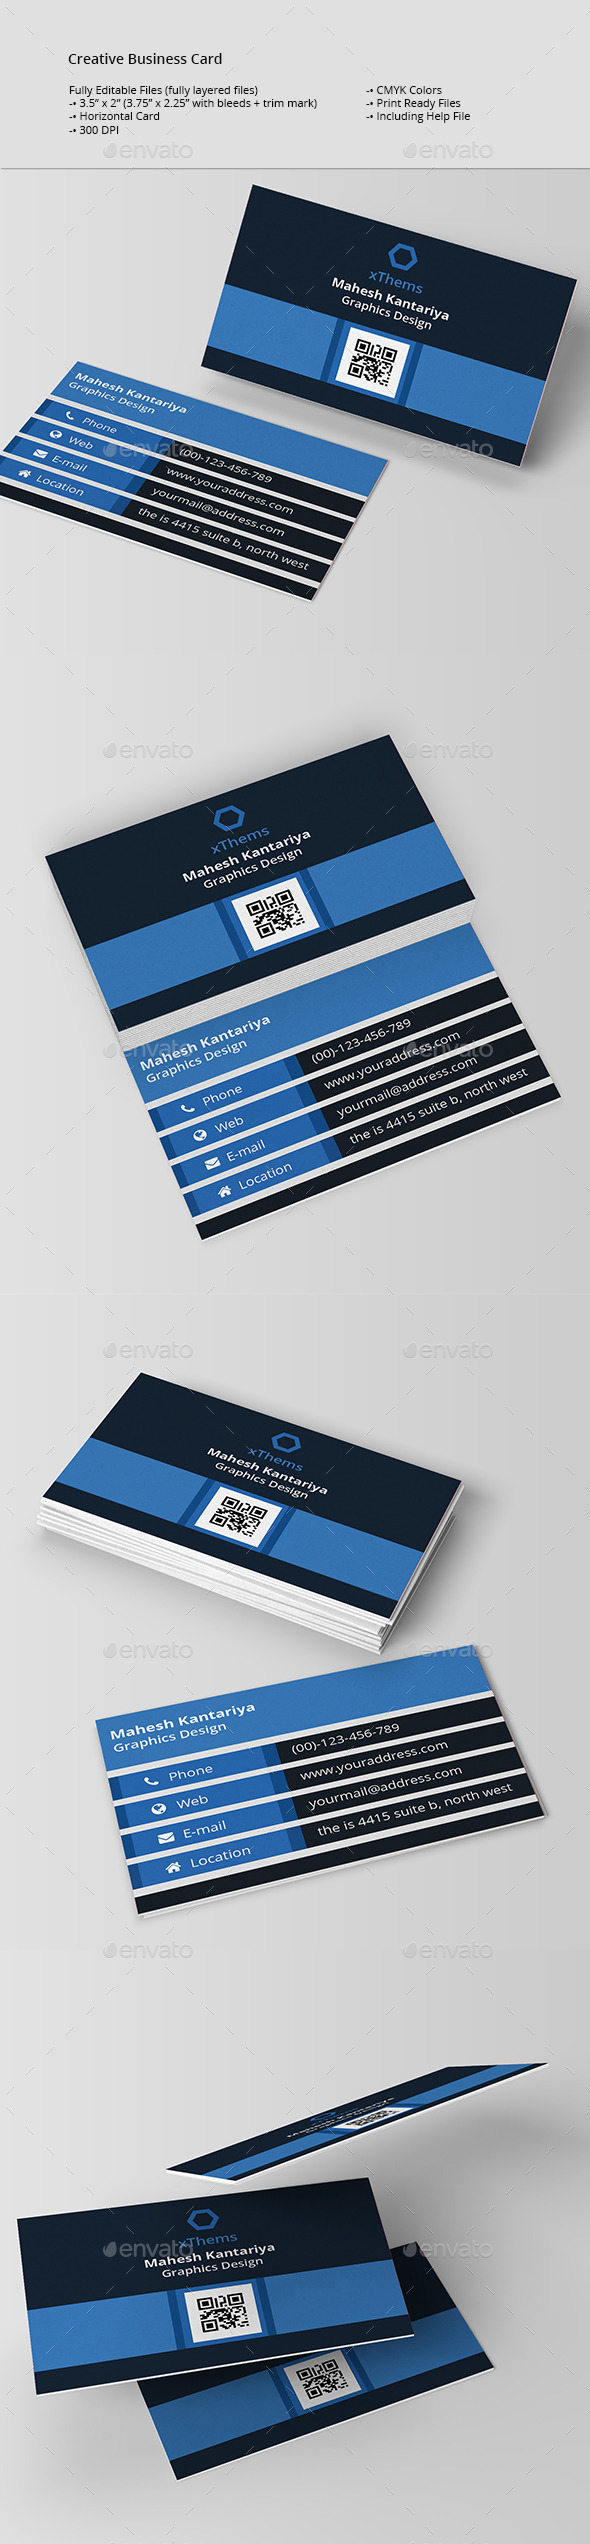 GraphicRiver Simply Business Card 11258537